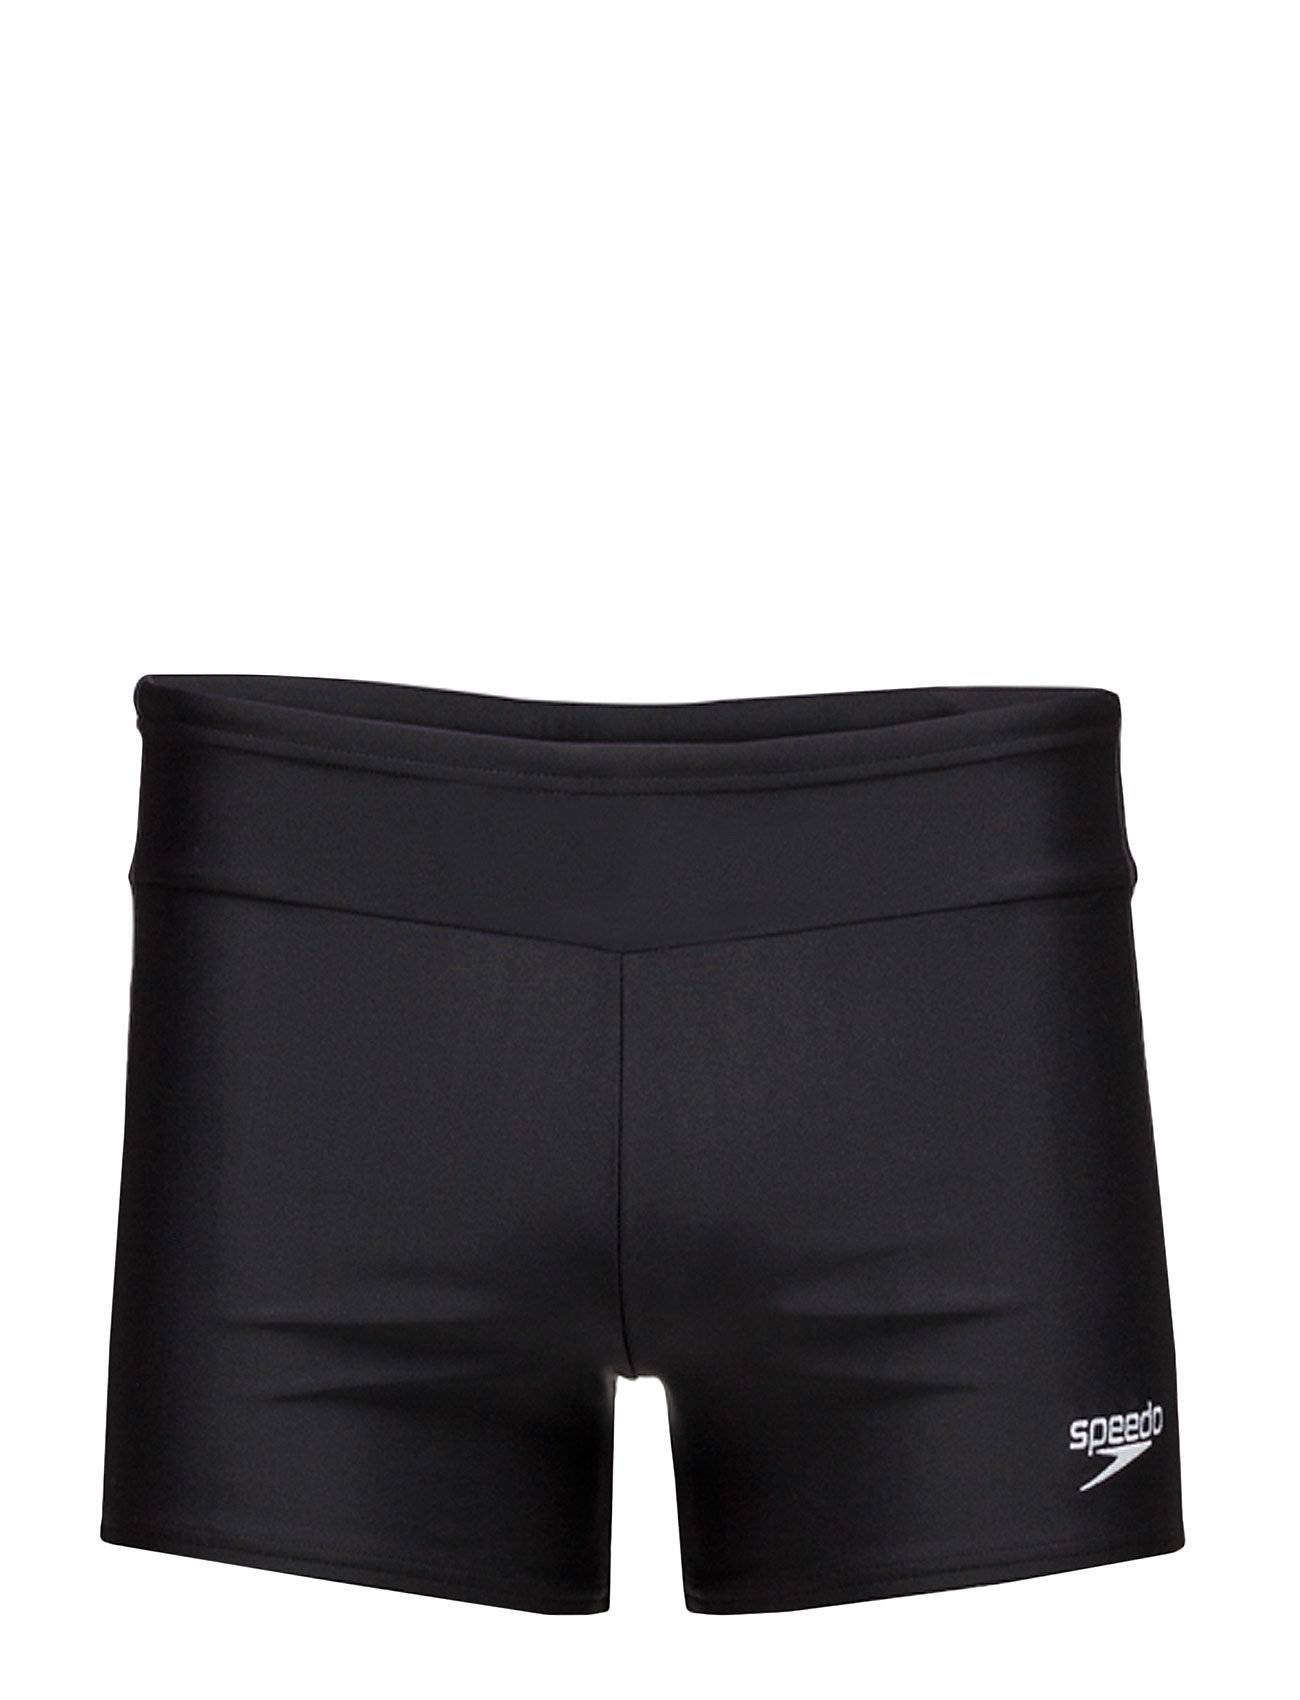 Speedo Houston Asht Am, Black 2